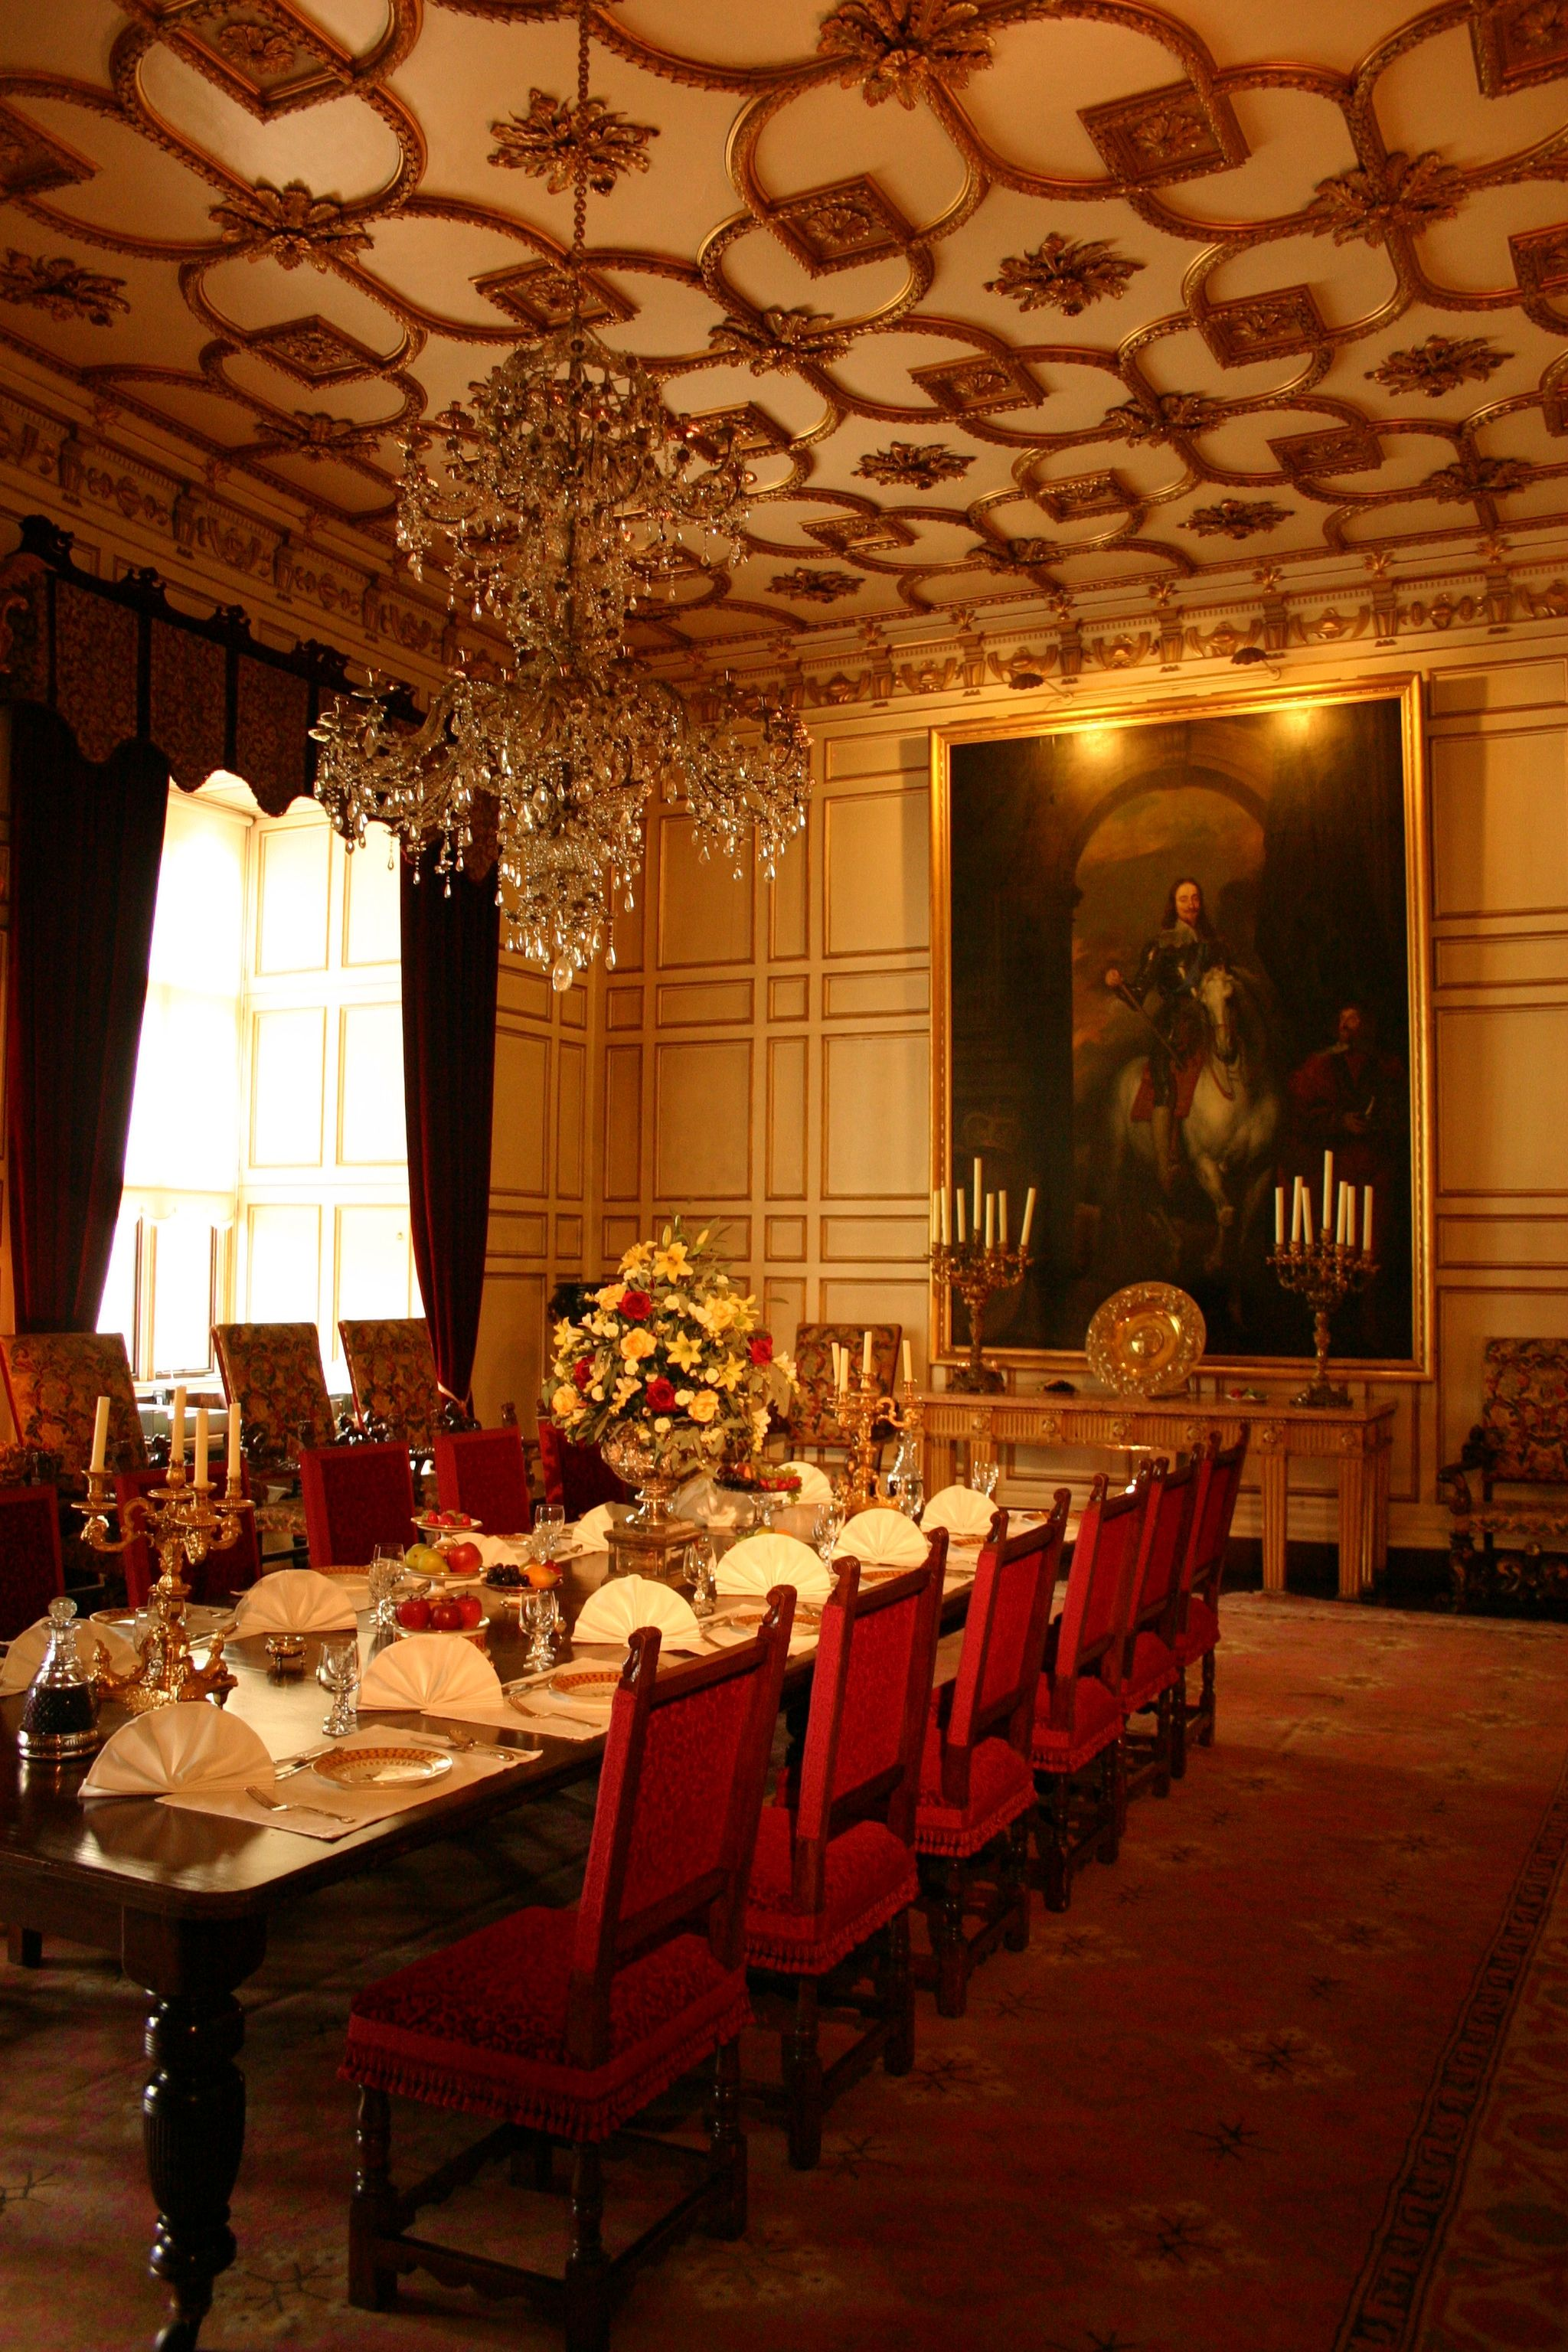 Peachy Warwick Castle Interior Really Cool For Medieval Theme Download Free Architecture Designs Rallybritishbridgeorg